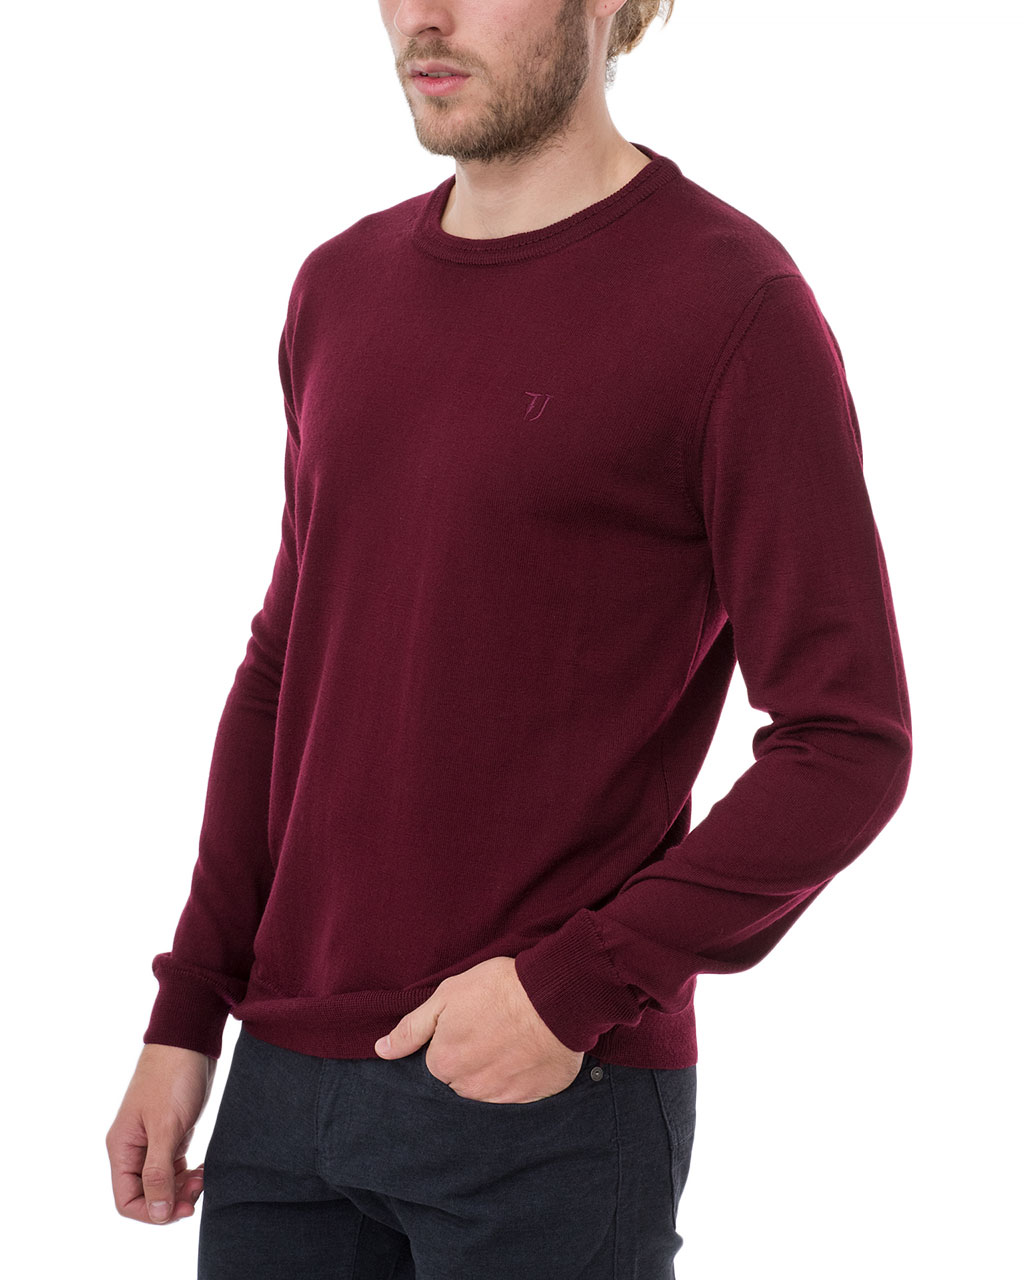 Men's jumper 52M00257-OF000422-R145/19-20 (3)